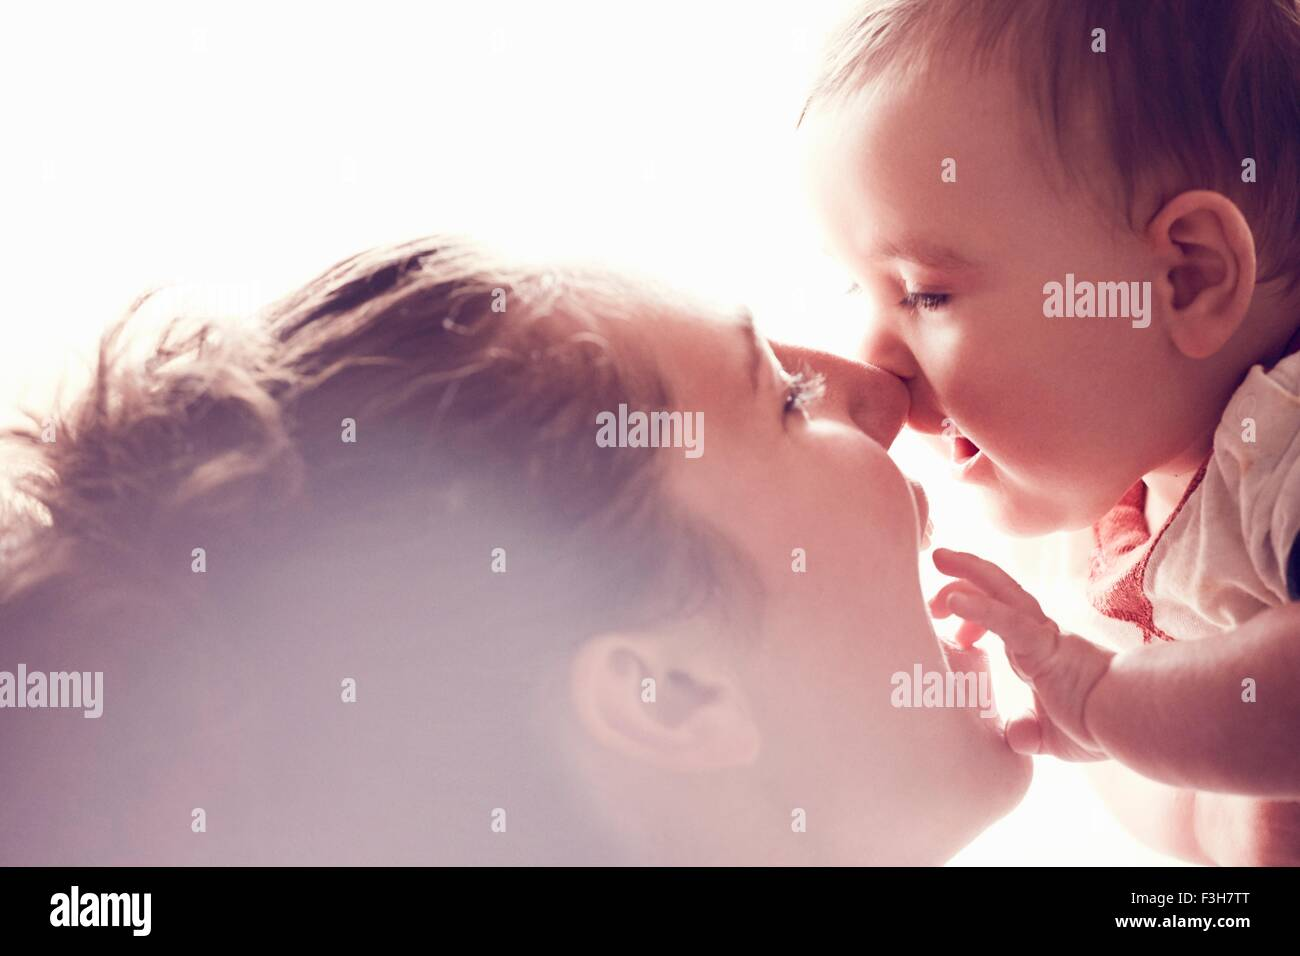 Mother rubbing noses with baby boy - Stock Image